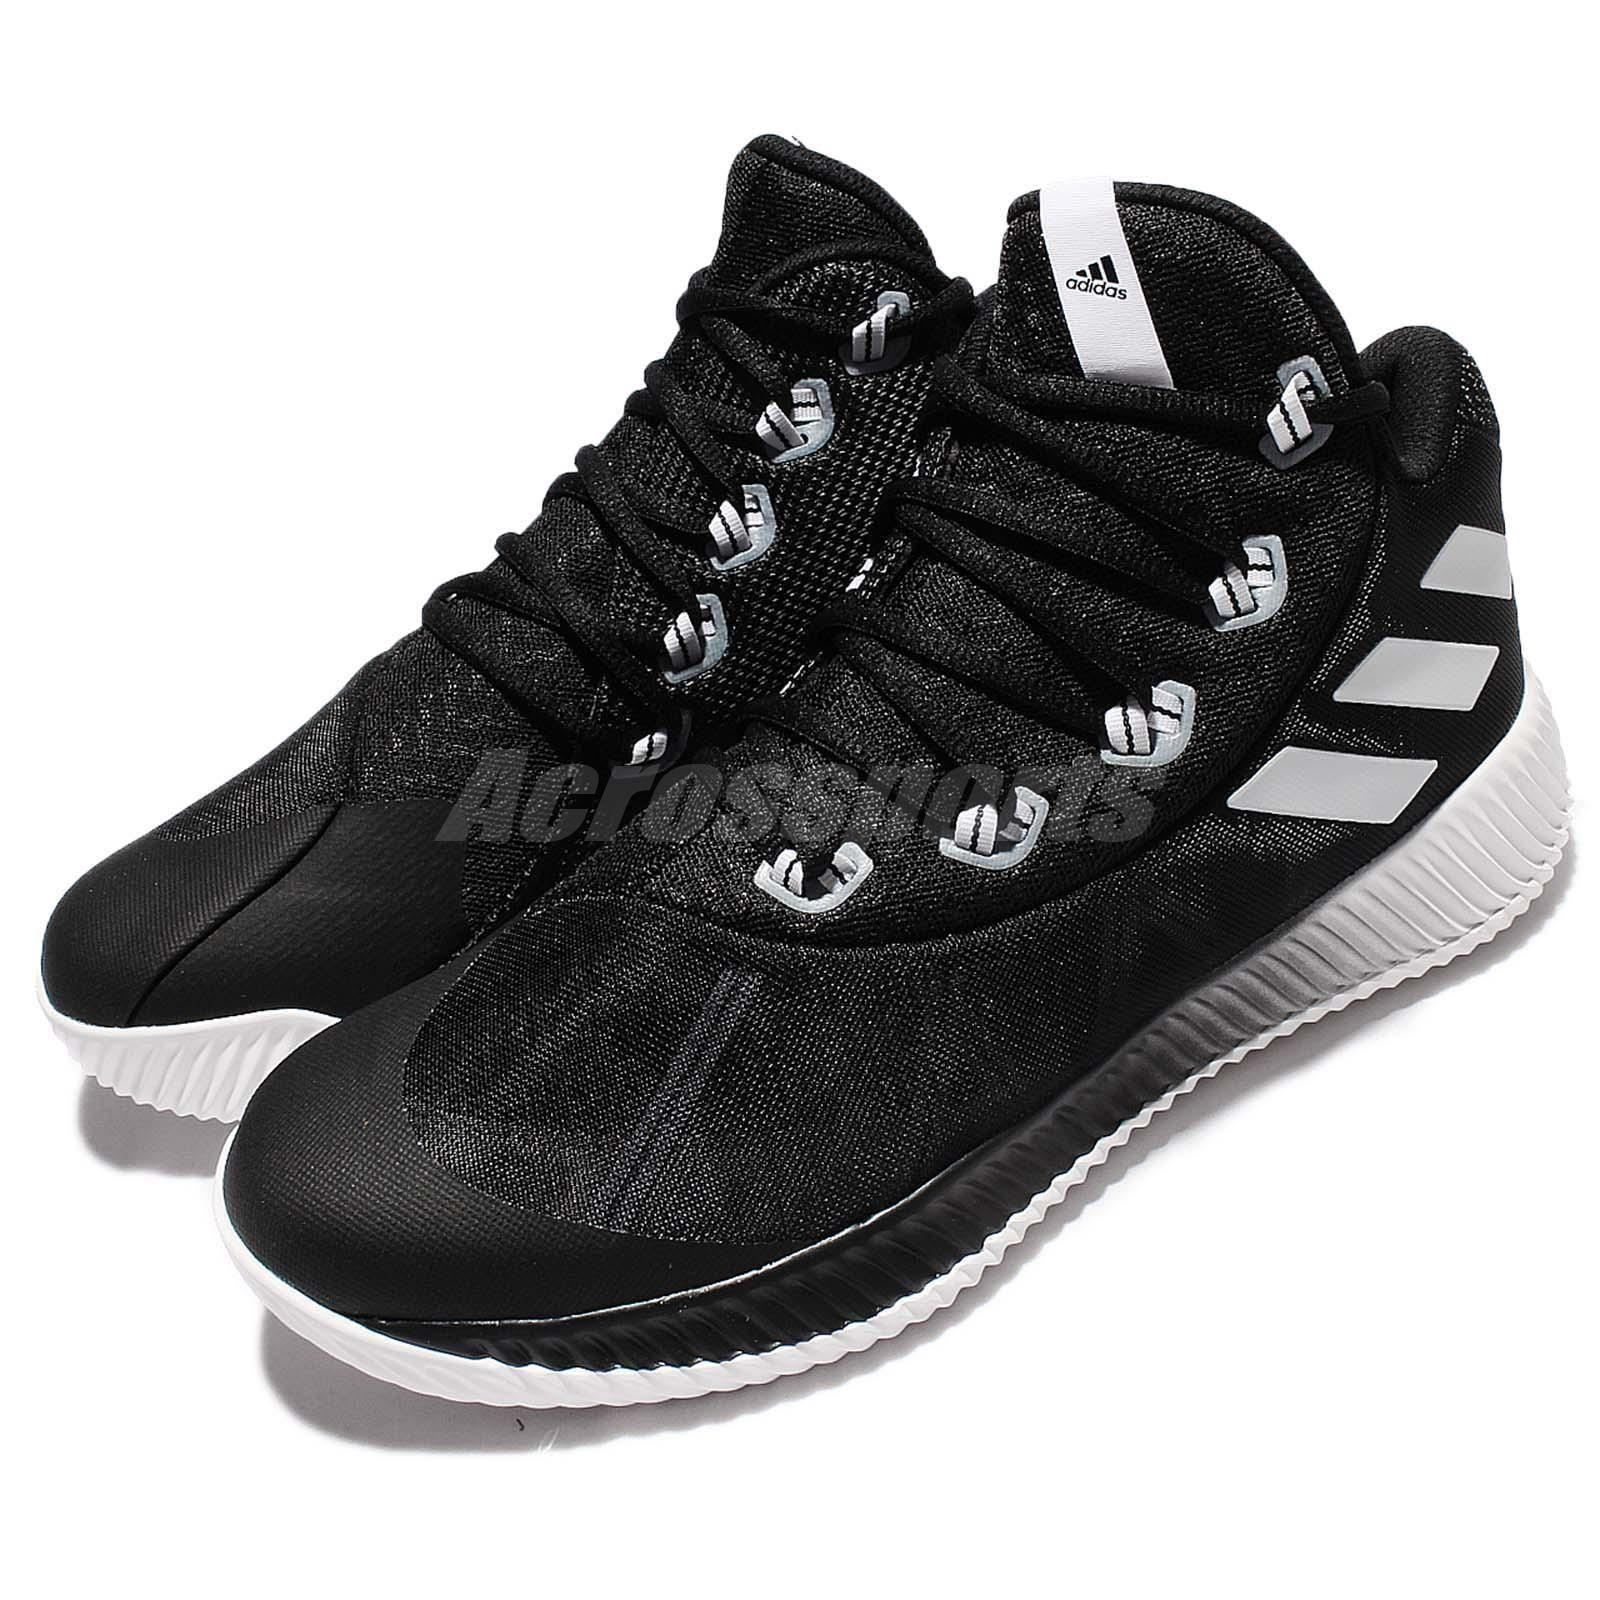 5c9f5c20707 50% Off adidas Energy Bounce BB Black White Men Basketball Shoes Sneakers  BW0562